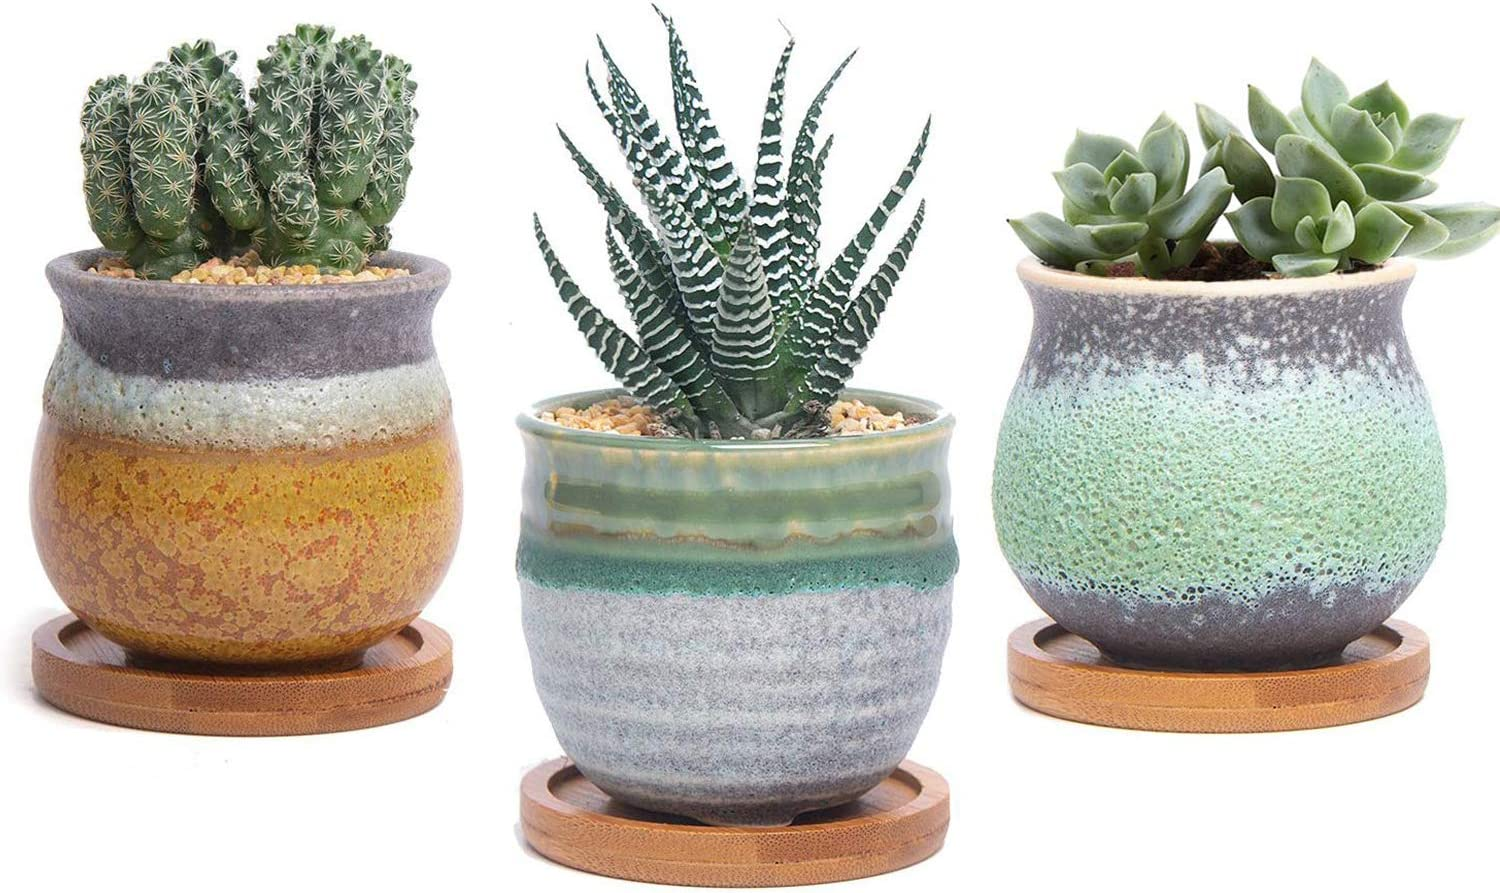 T4U 2.5 Inch Small Ceramic Succulent Pots with Bamboo Tray Set of 3, Sagging Glazed Porcelain Summer Serial Handicraft as Gift for Mom Sister Best for Home Office Table Desk Windowsill Decoration